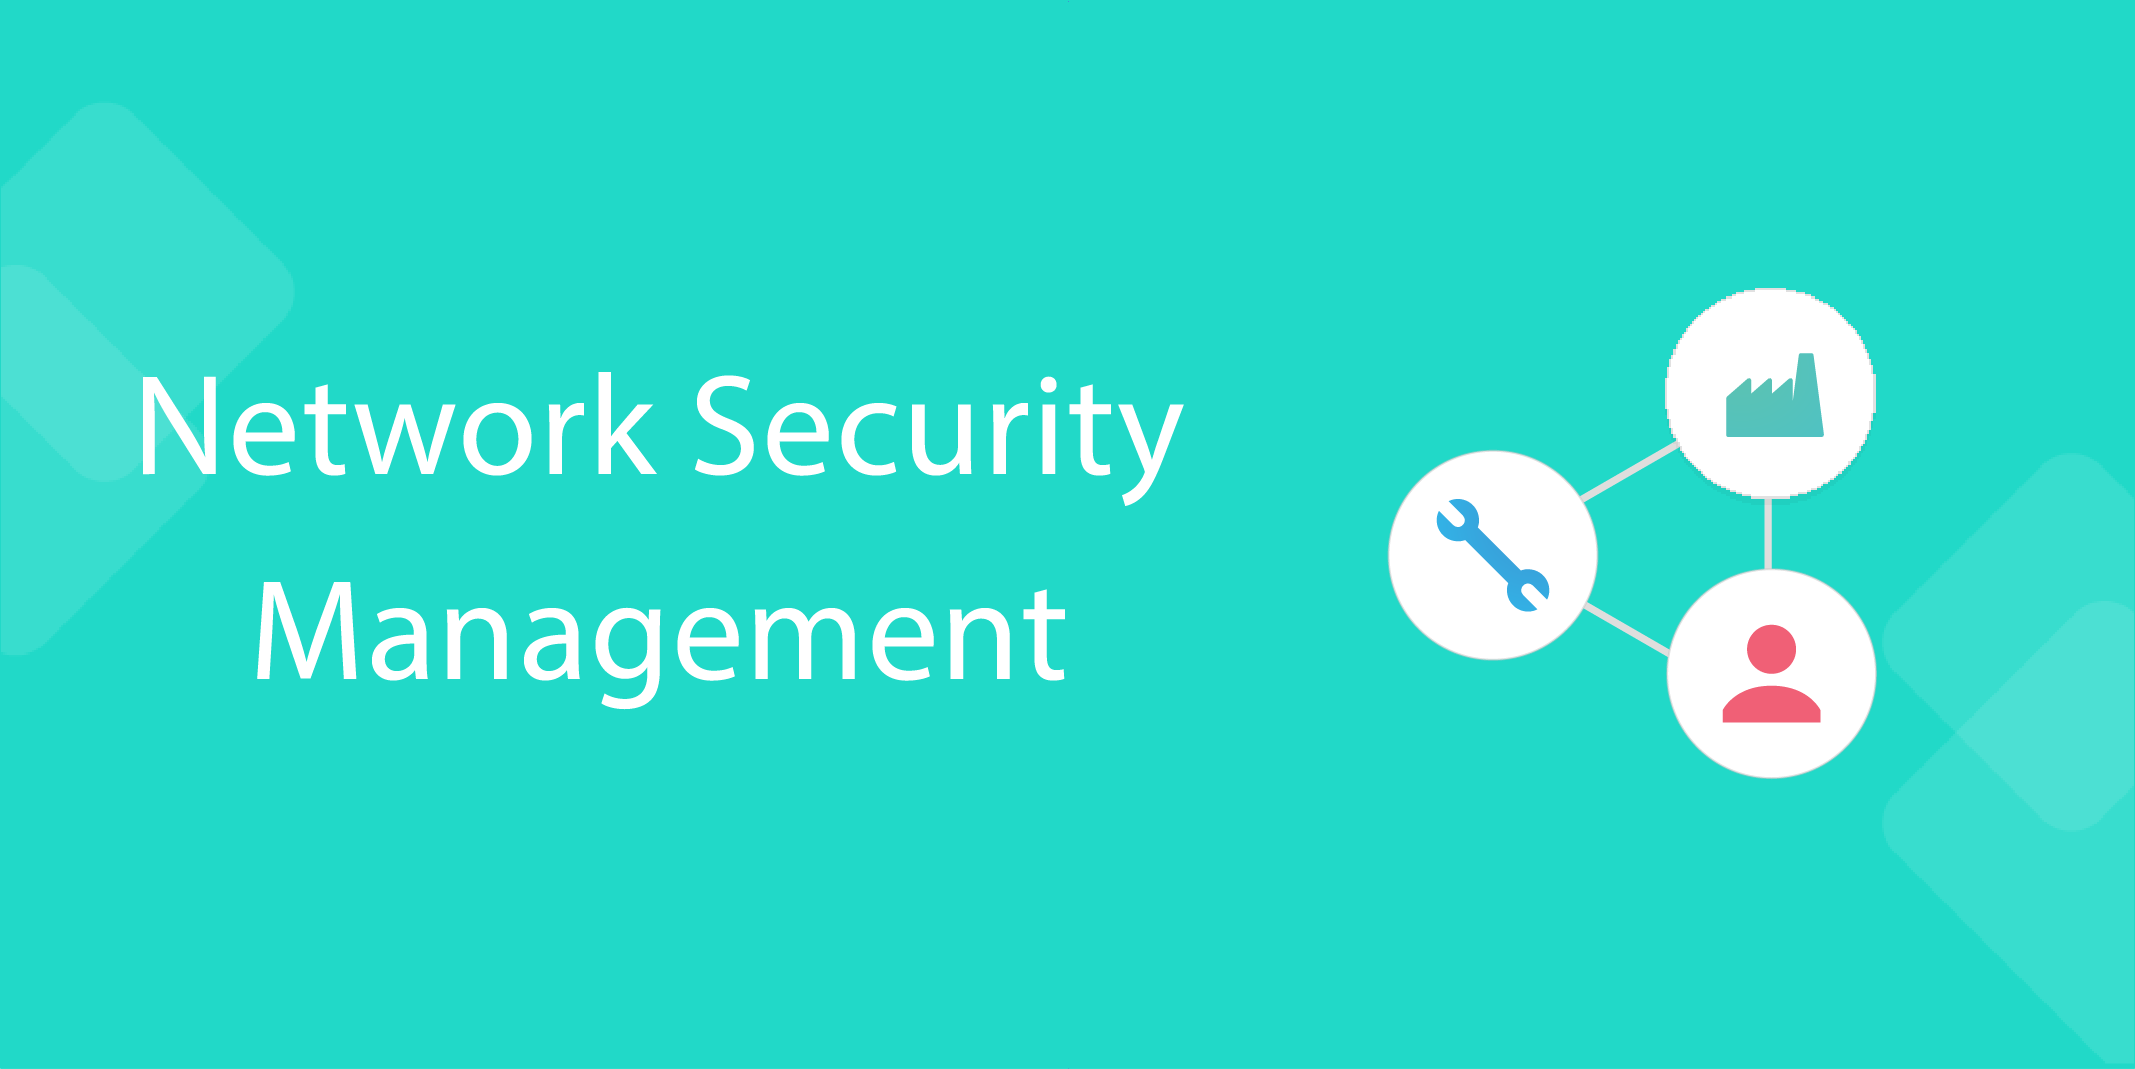 Network Security Management Process Street